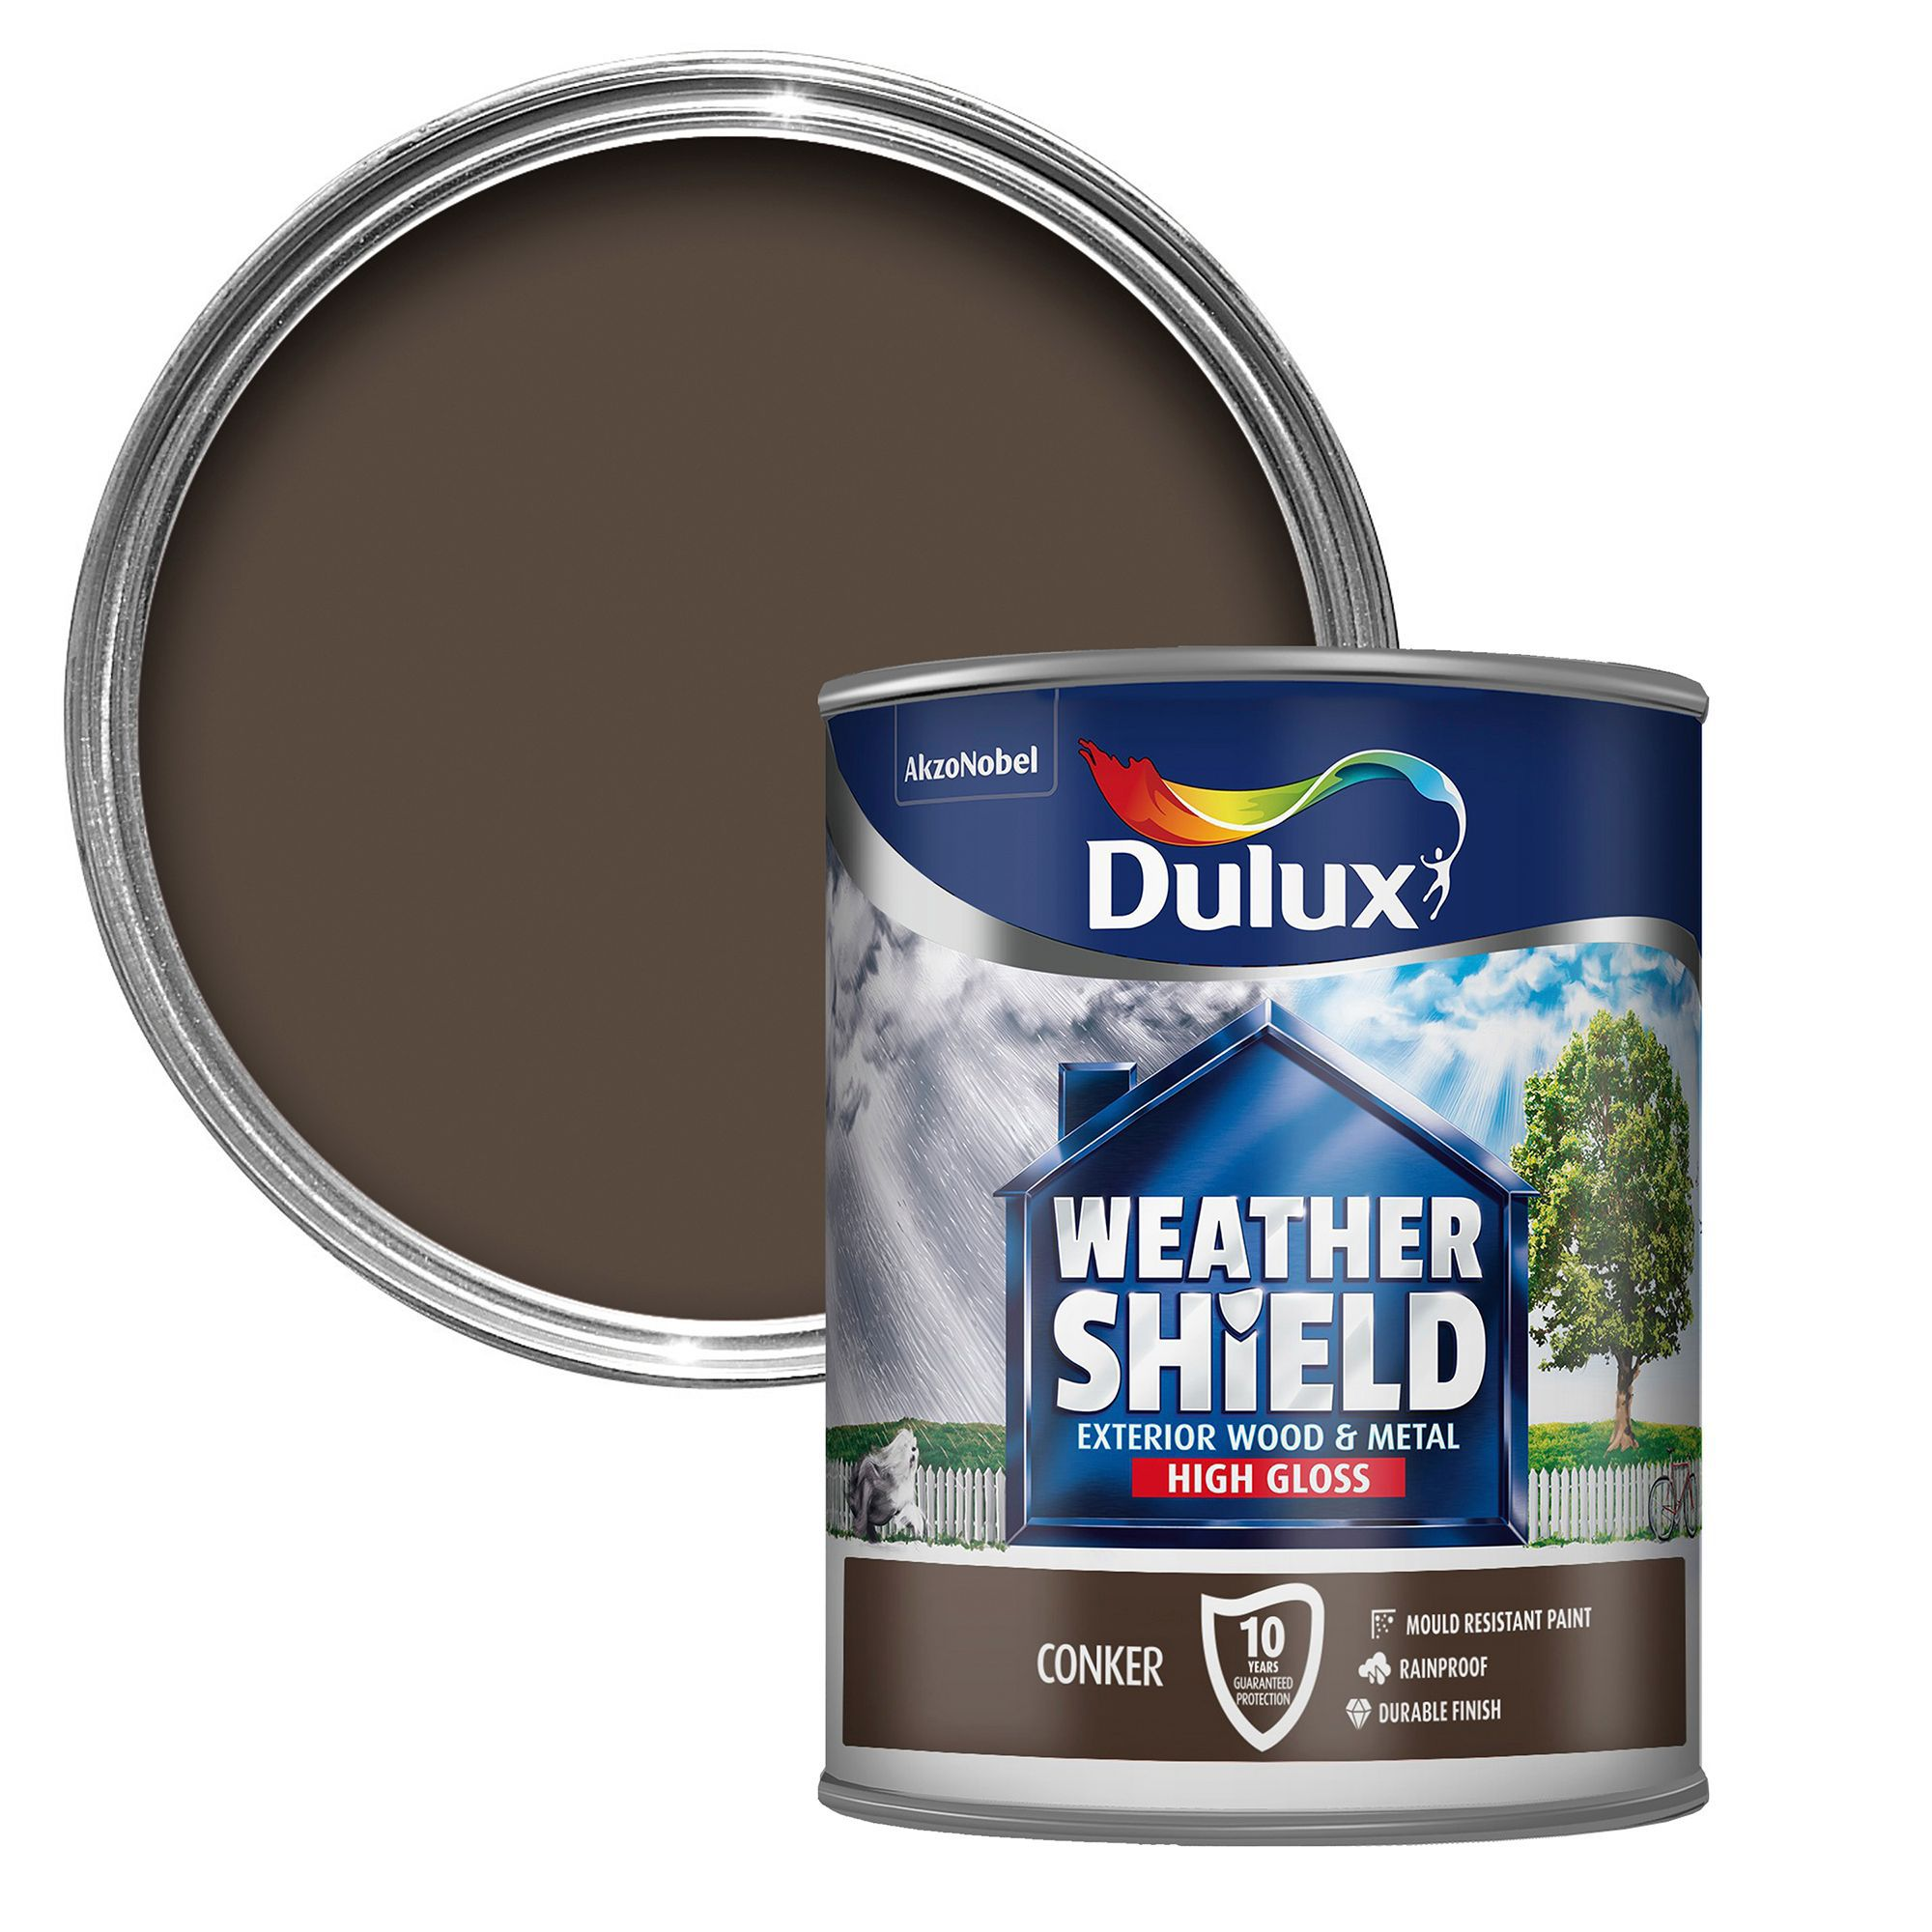 Dulux weathershield exterior conker gloss wood metal paint 750ml departments diy at b q - Dulux exterior gloss paint style ...